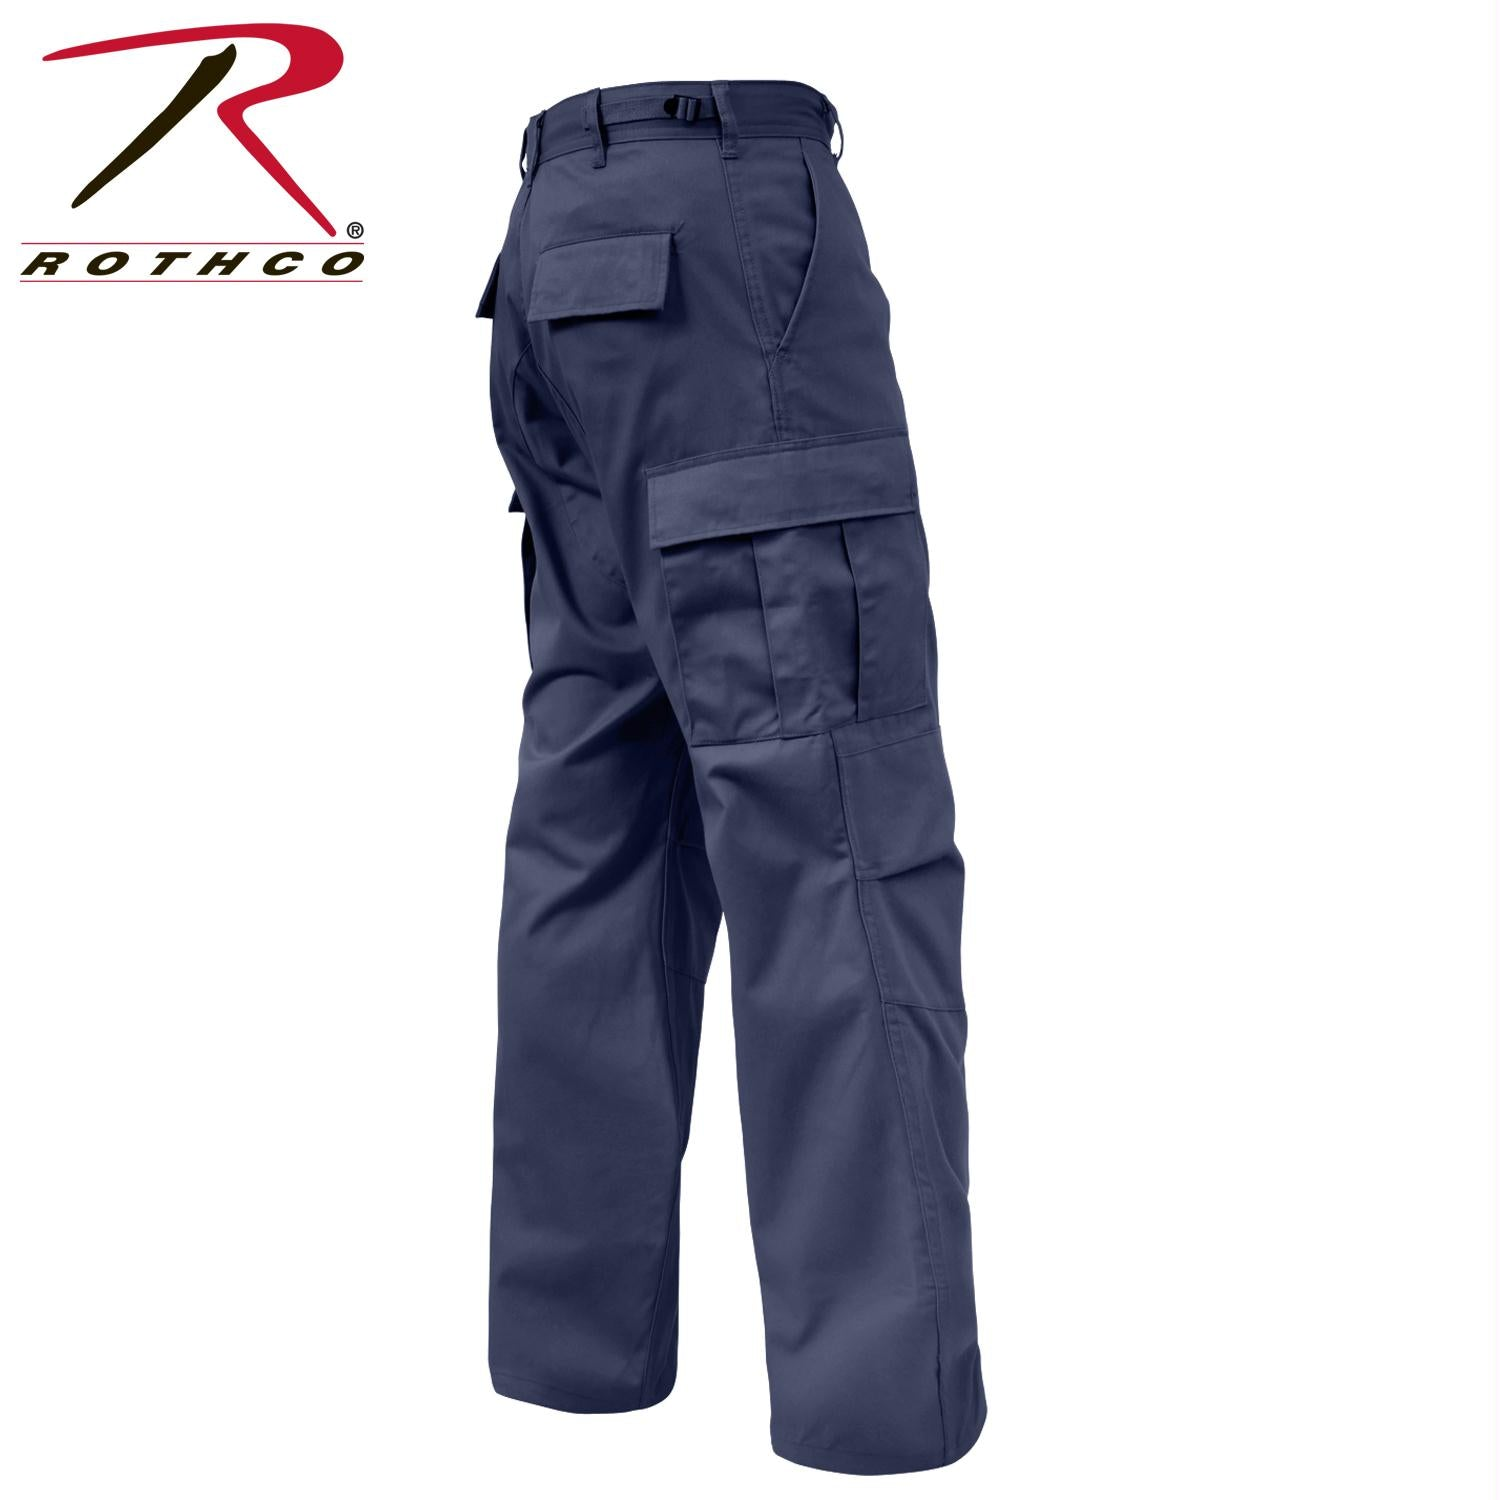 Rothco Relaxed Fit Zipper Fly BDU Pants - Navy Blue / 2XL